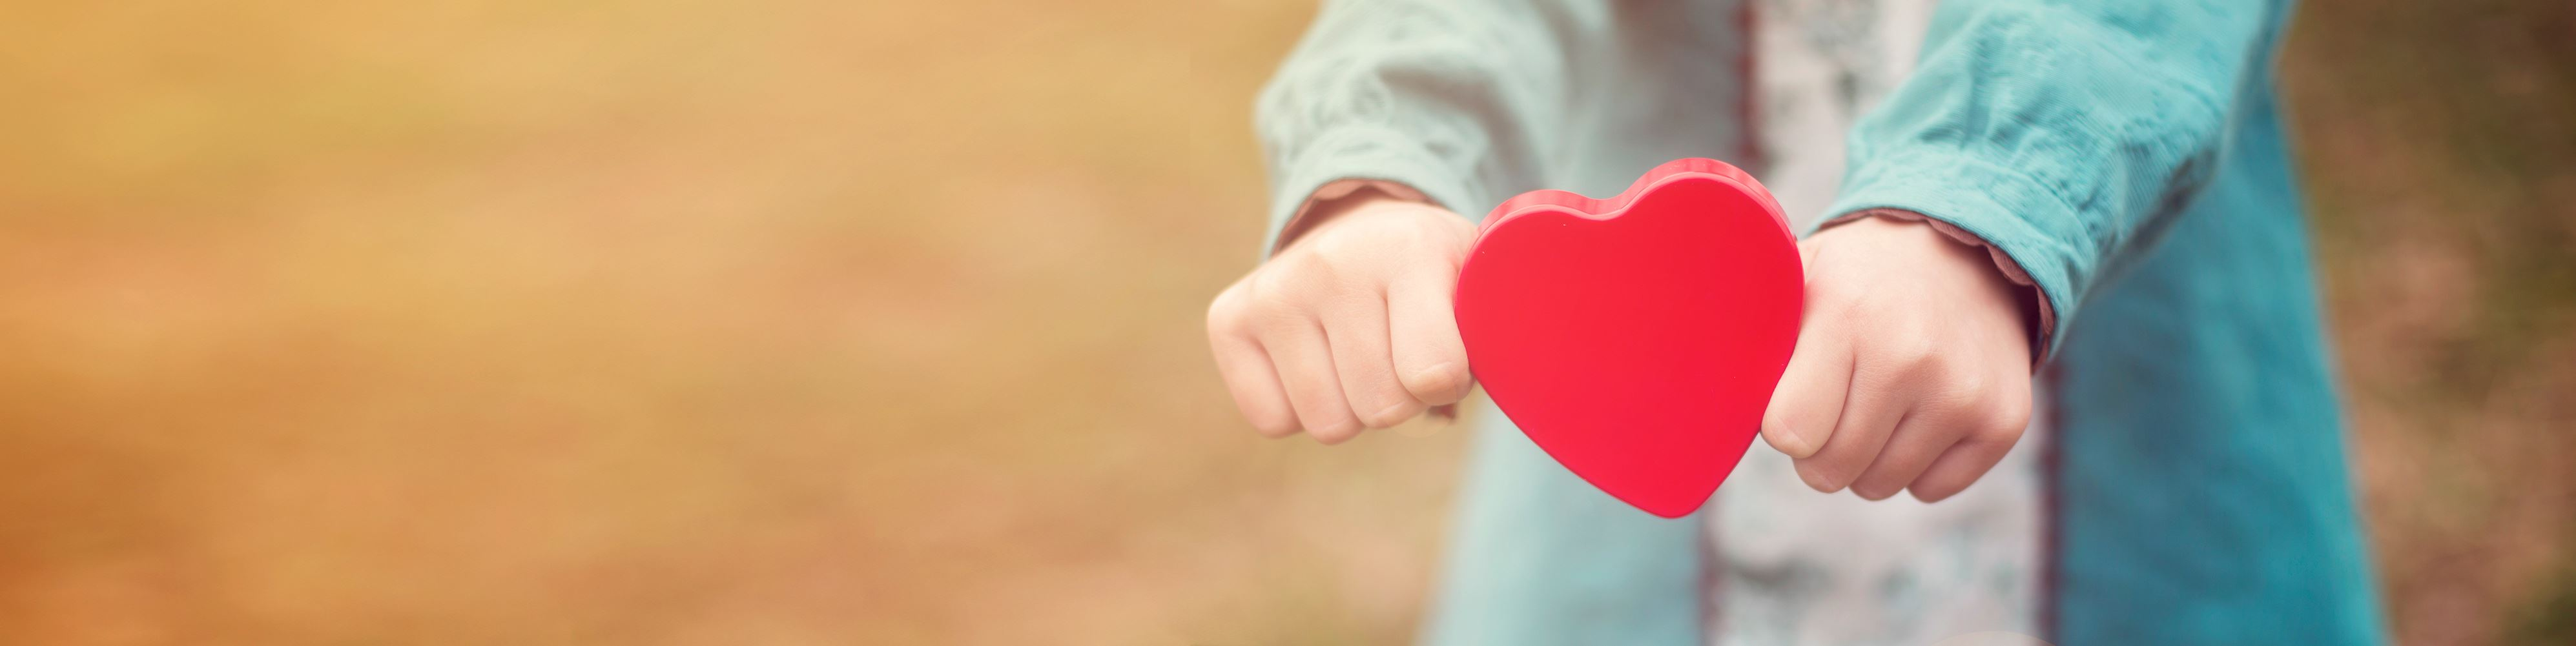 Foundation Giving Donation Heart Hands